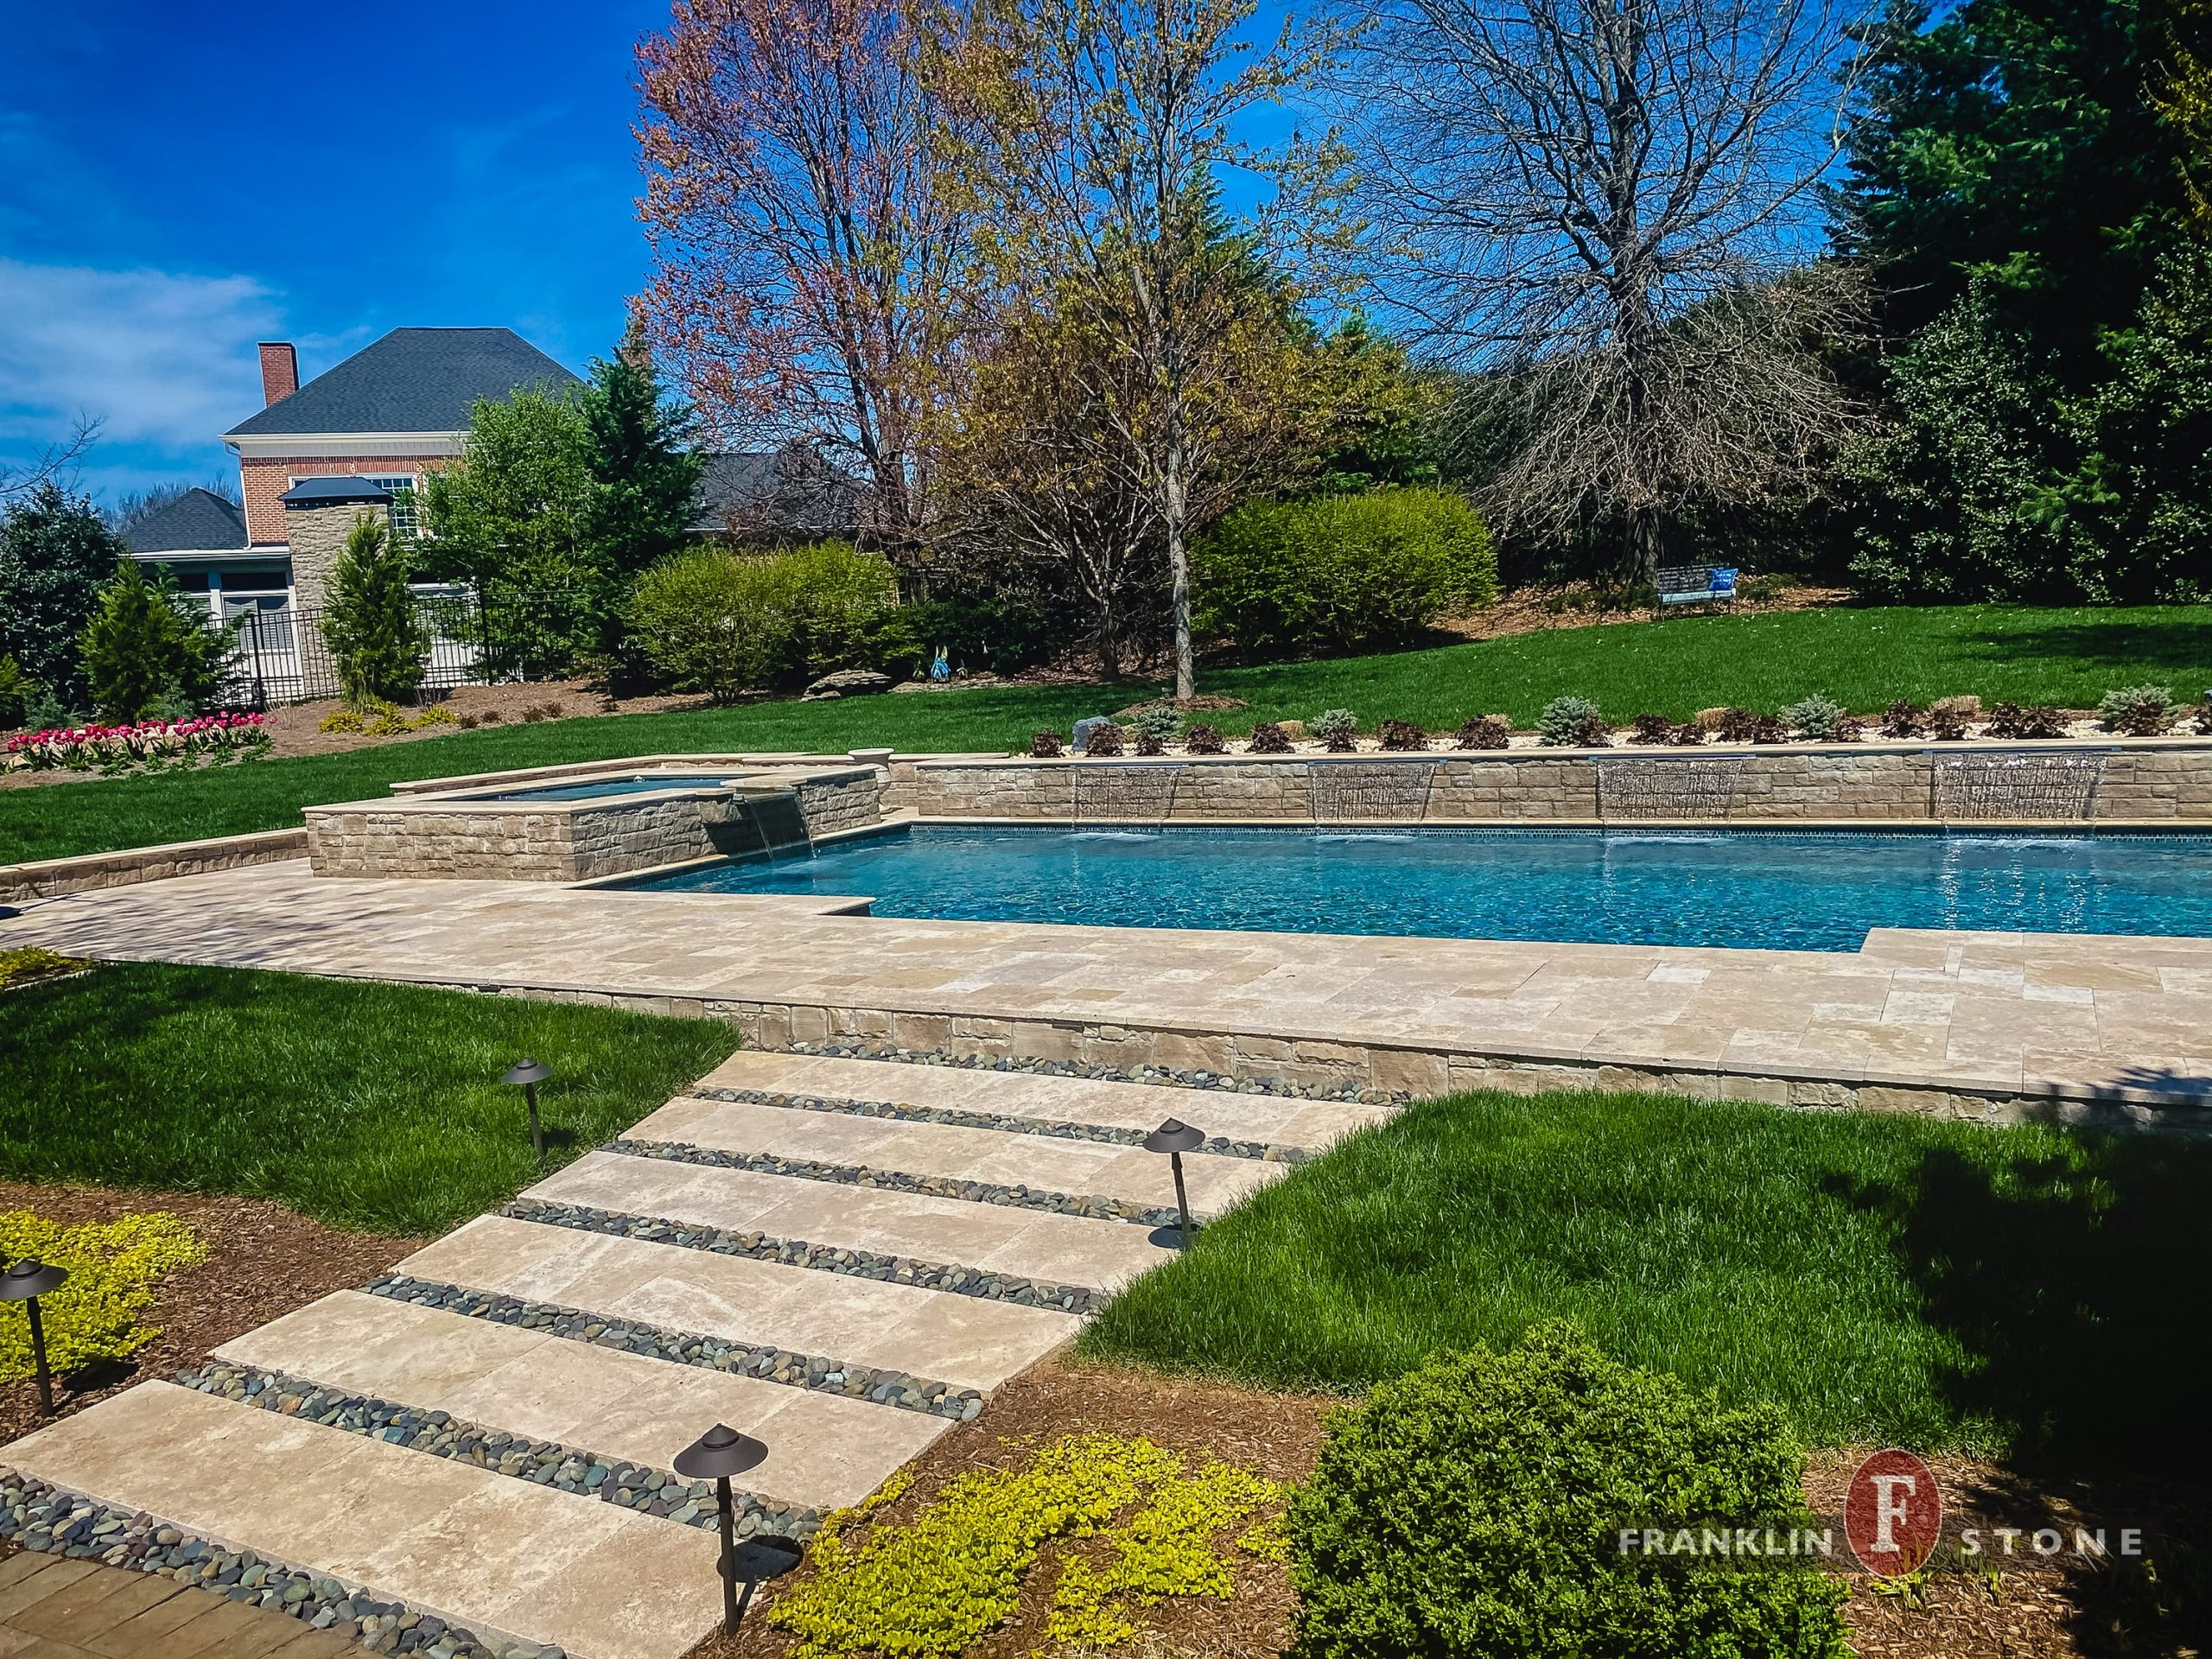 Franklin Stone walkway to pool and spa with running water features